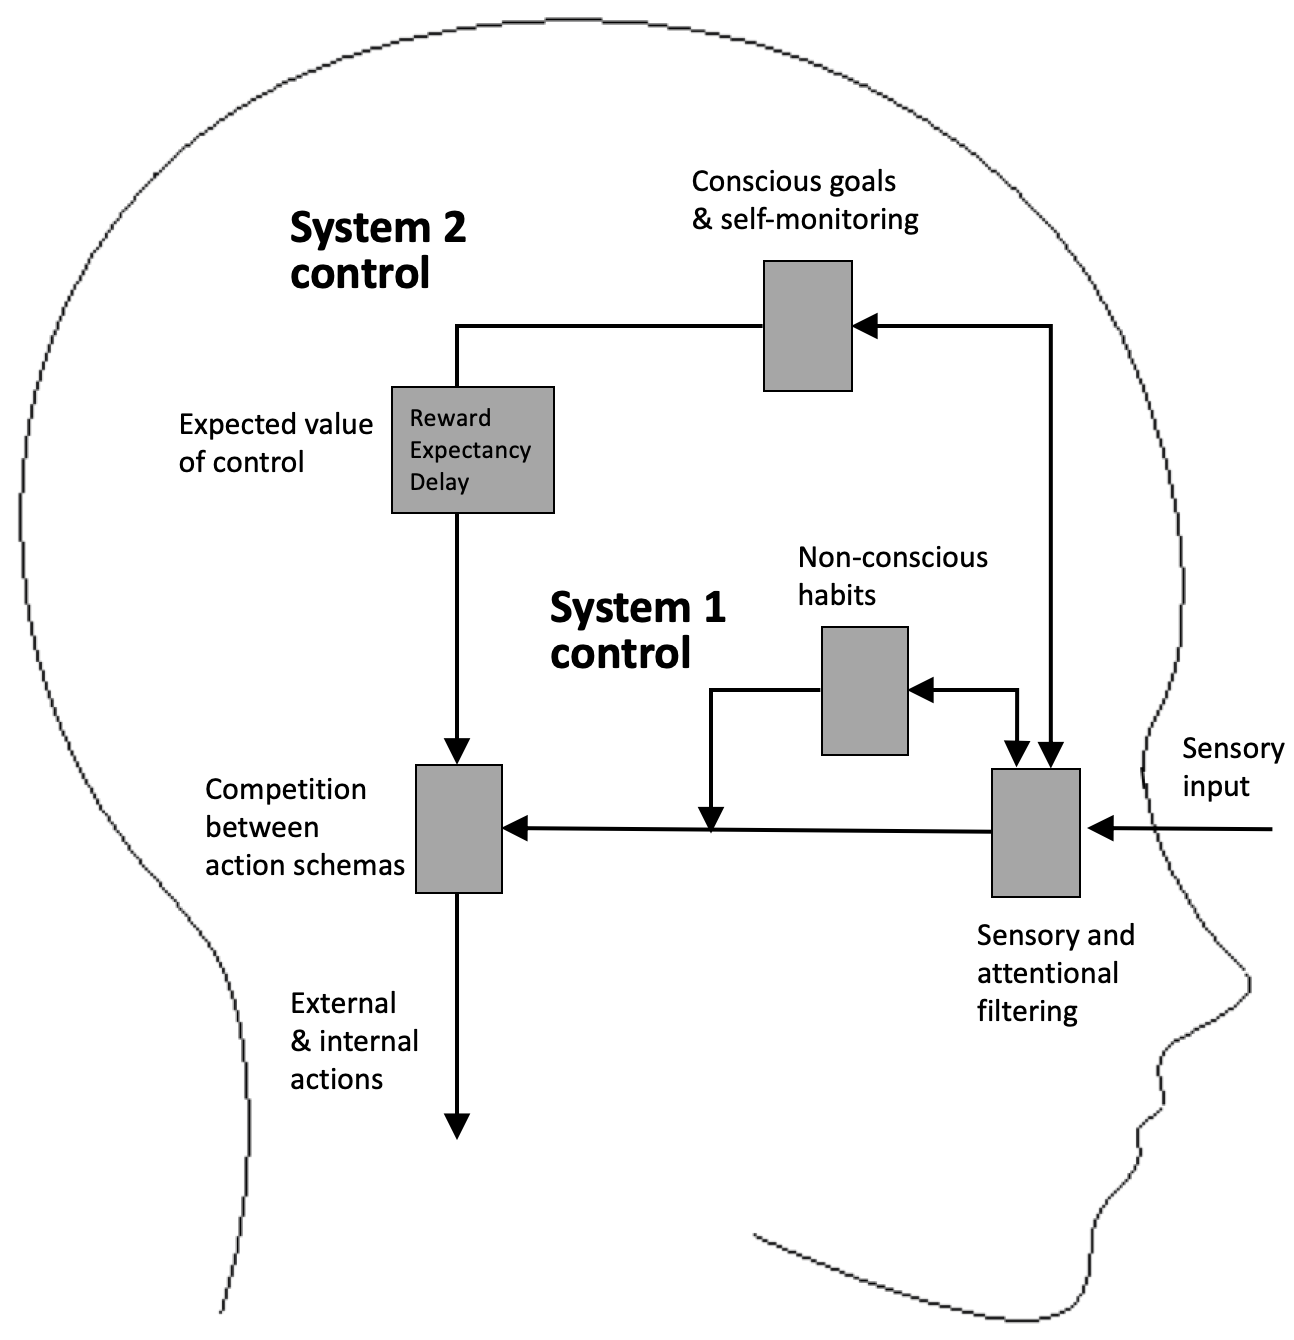 A summary of the dual systems model of self-regulation. **System 1** control refers to habits or instinctive responses that get triggered by external stimuli or internal states. **System 2** control refers to behaviour triggered by consciously held goals or intentions. **Self-control** is to use conscious System 2 control to override System 1 responses when the two are in control. The strength of conscious self-control depends on the **expected value of control**, a cost-benefit analysis of what you might gain from exercising self-control.